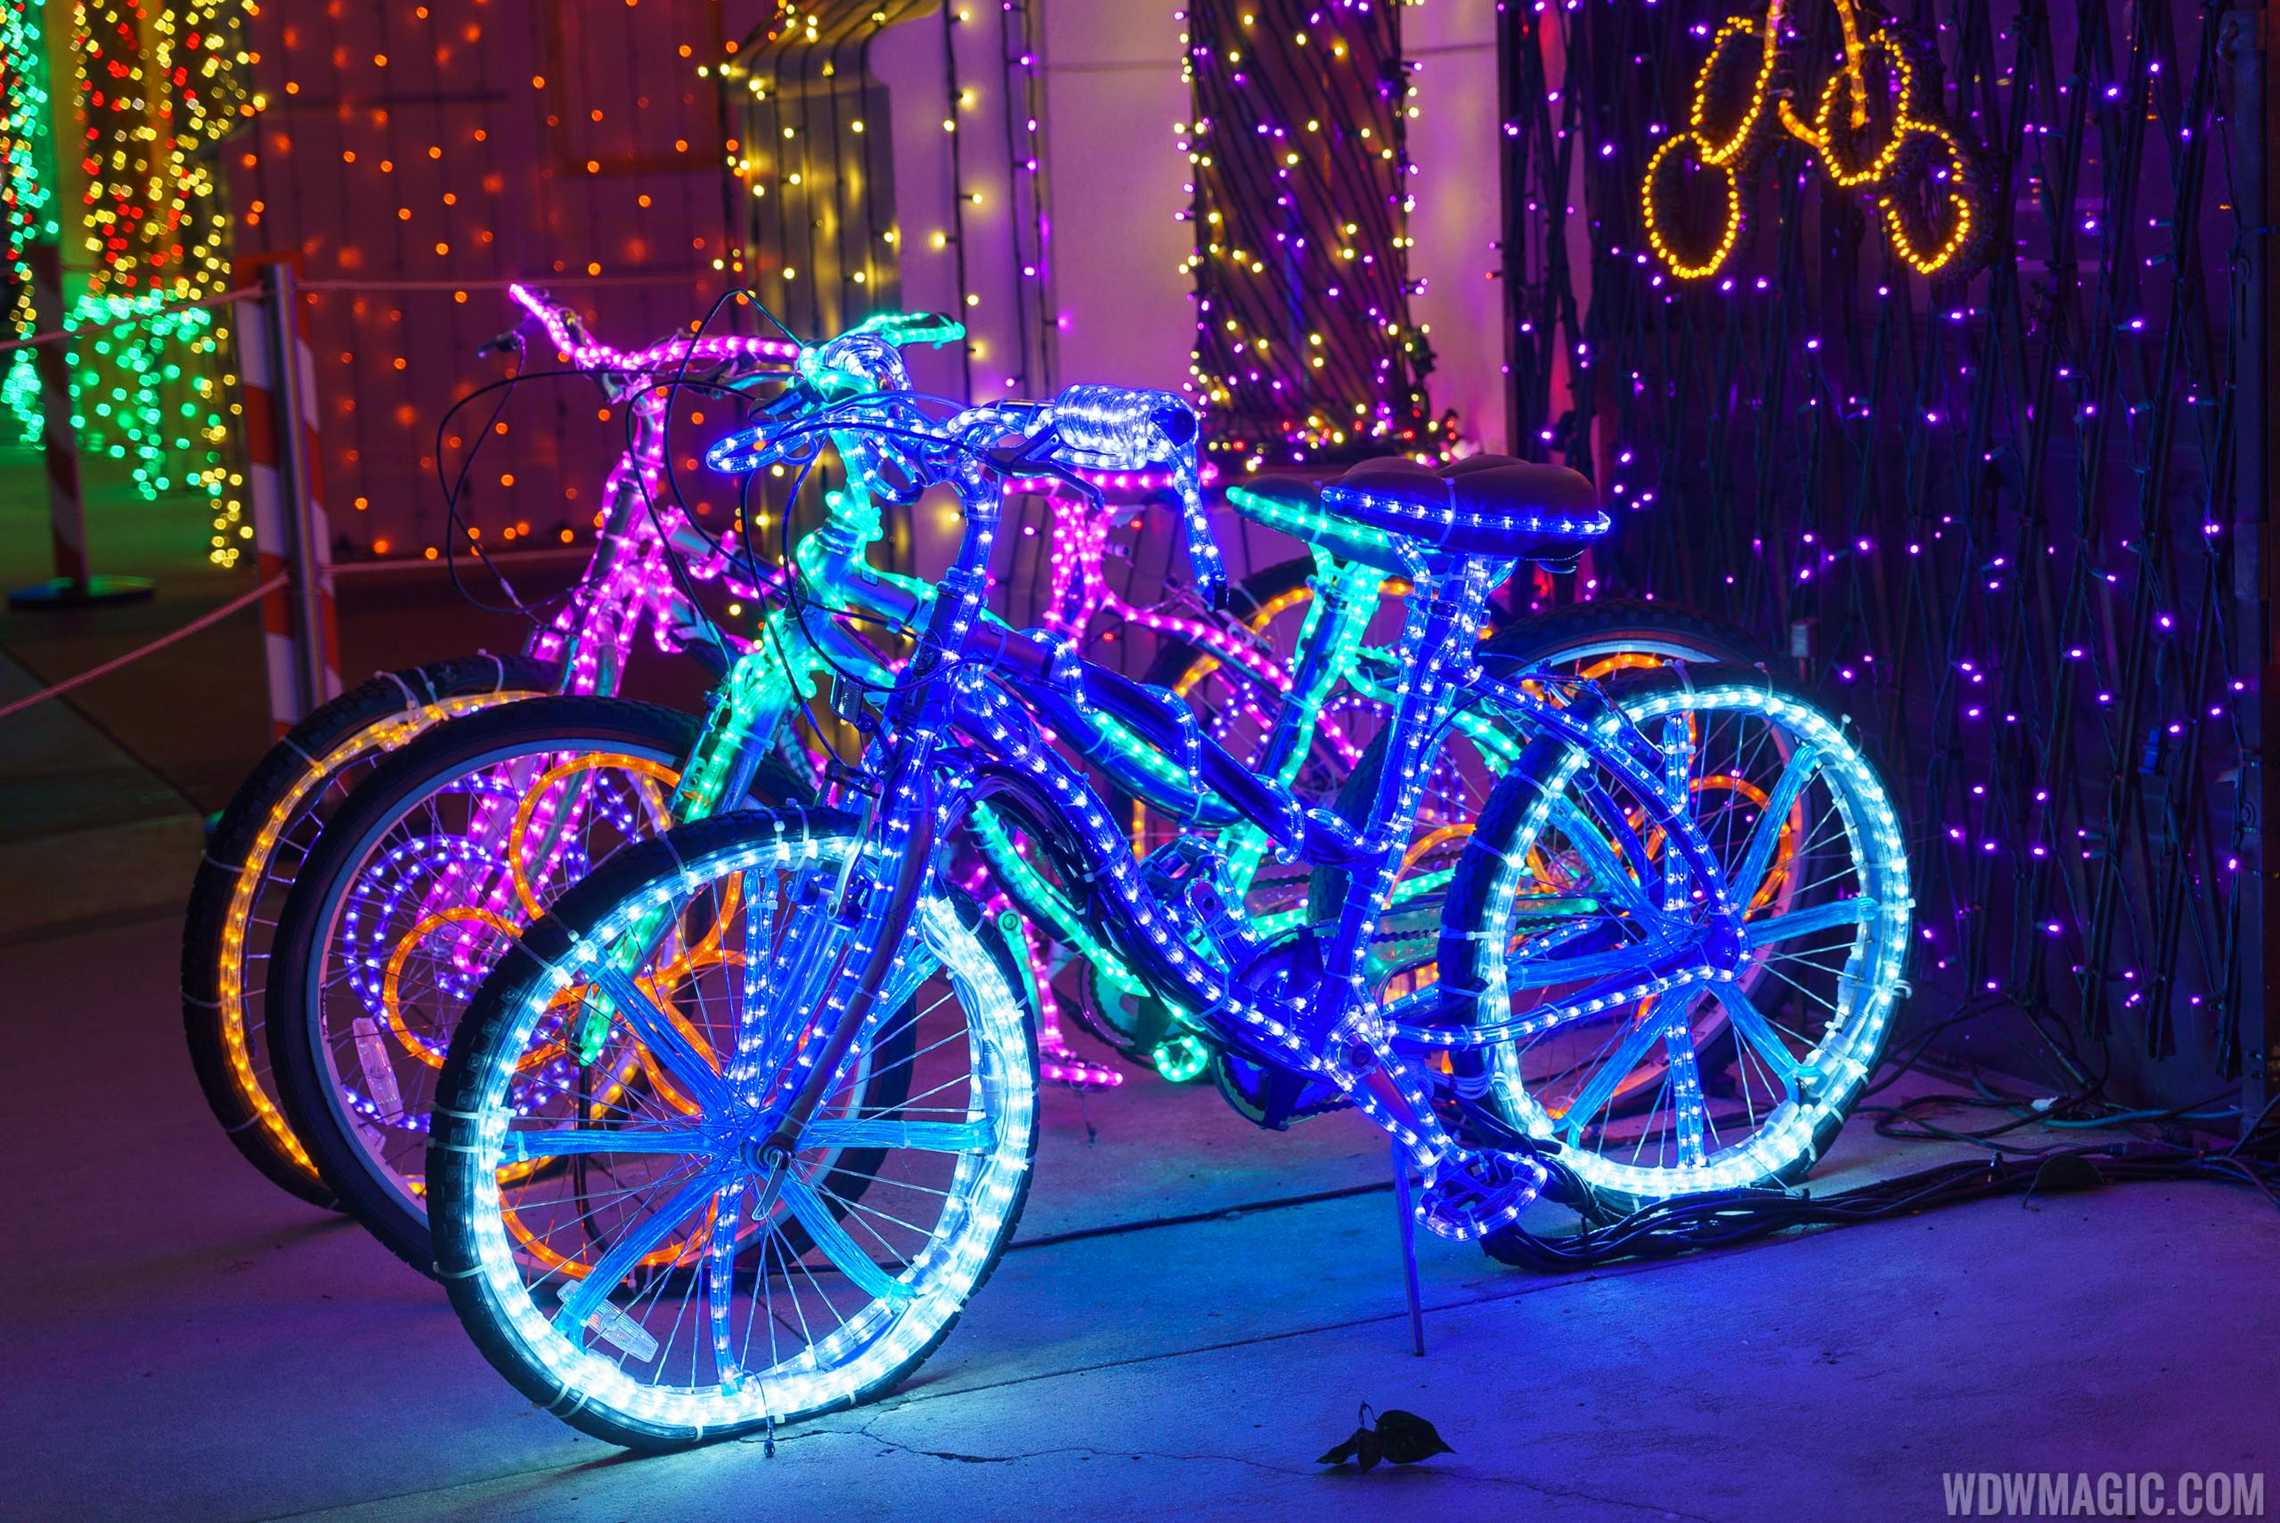 Even the bikes were decorated with lights